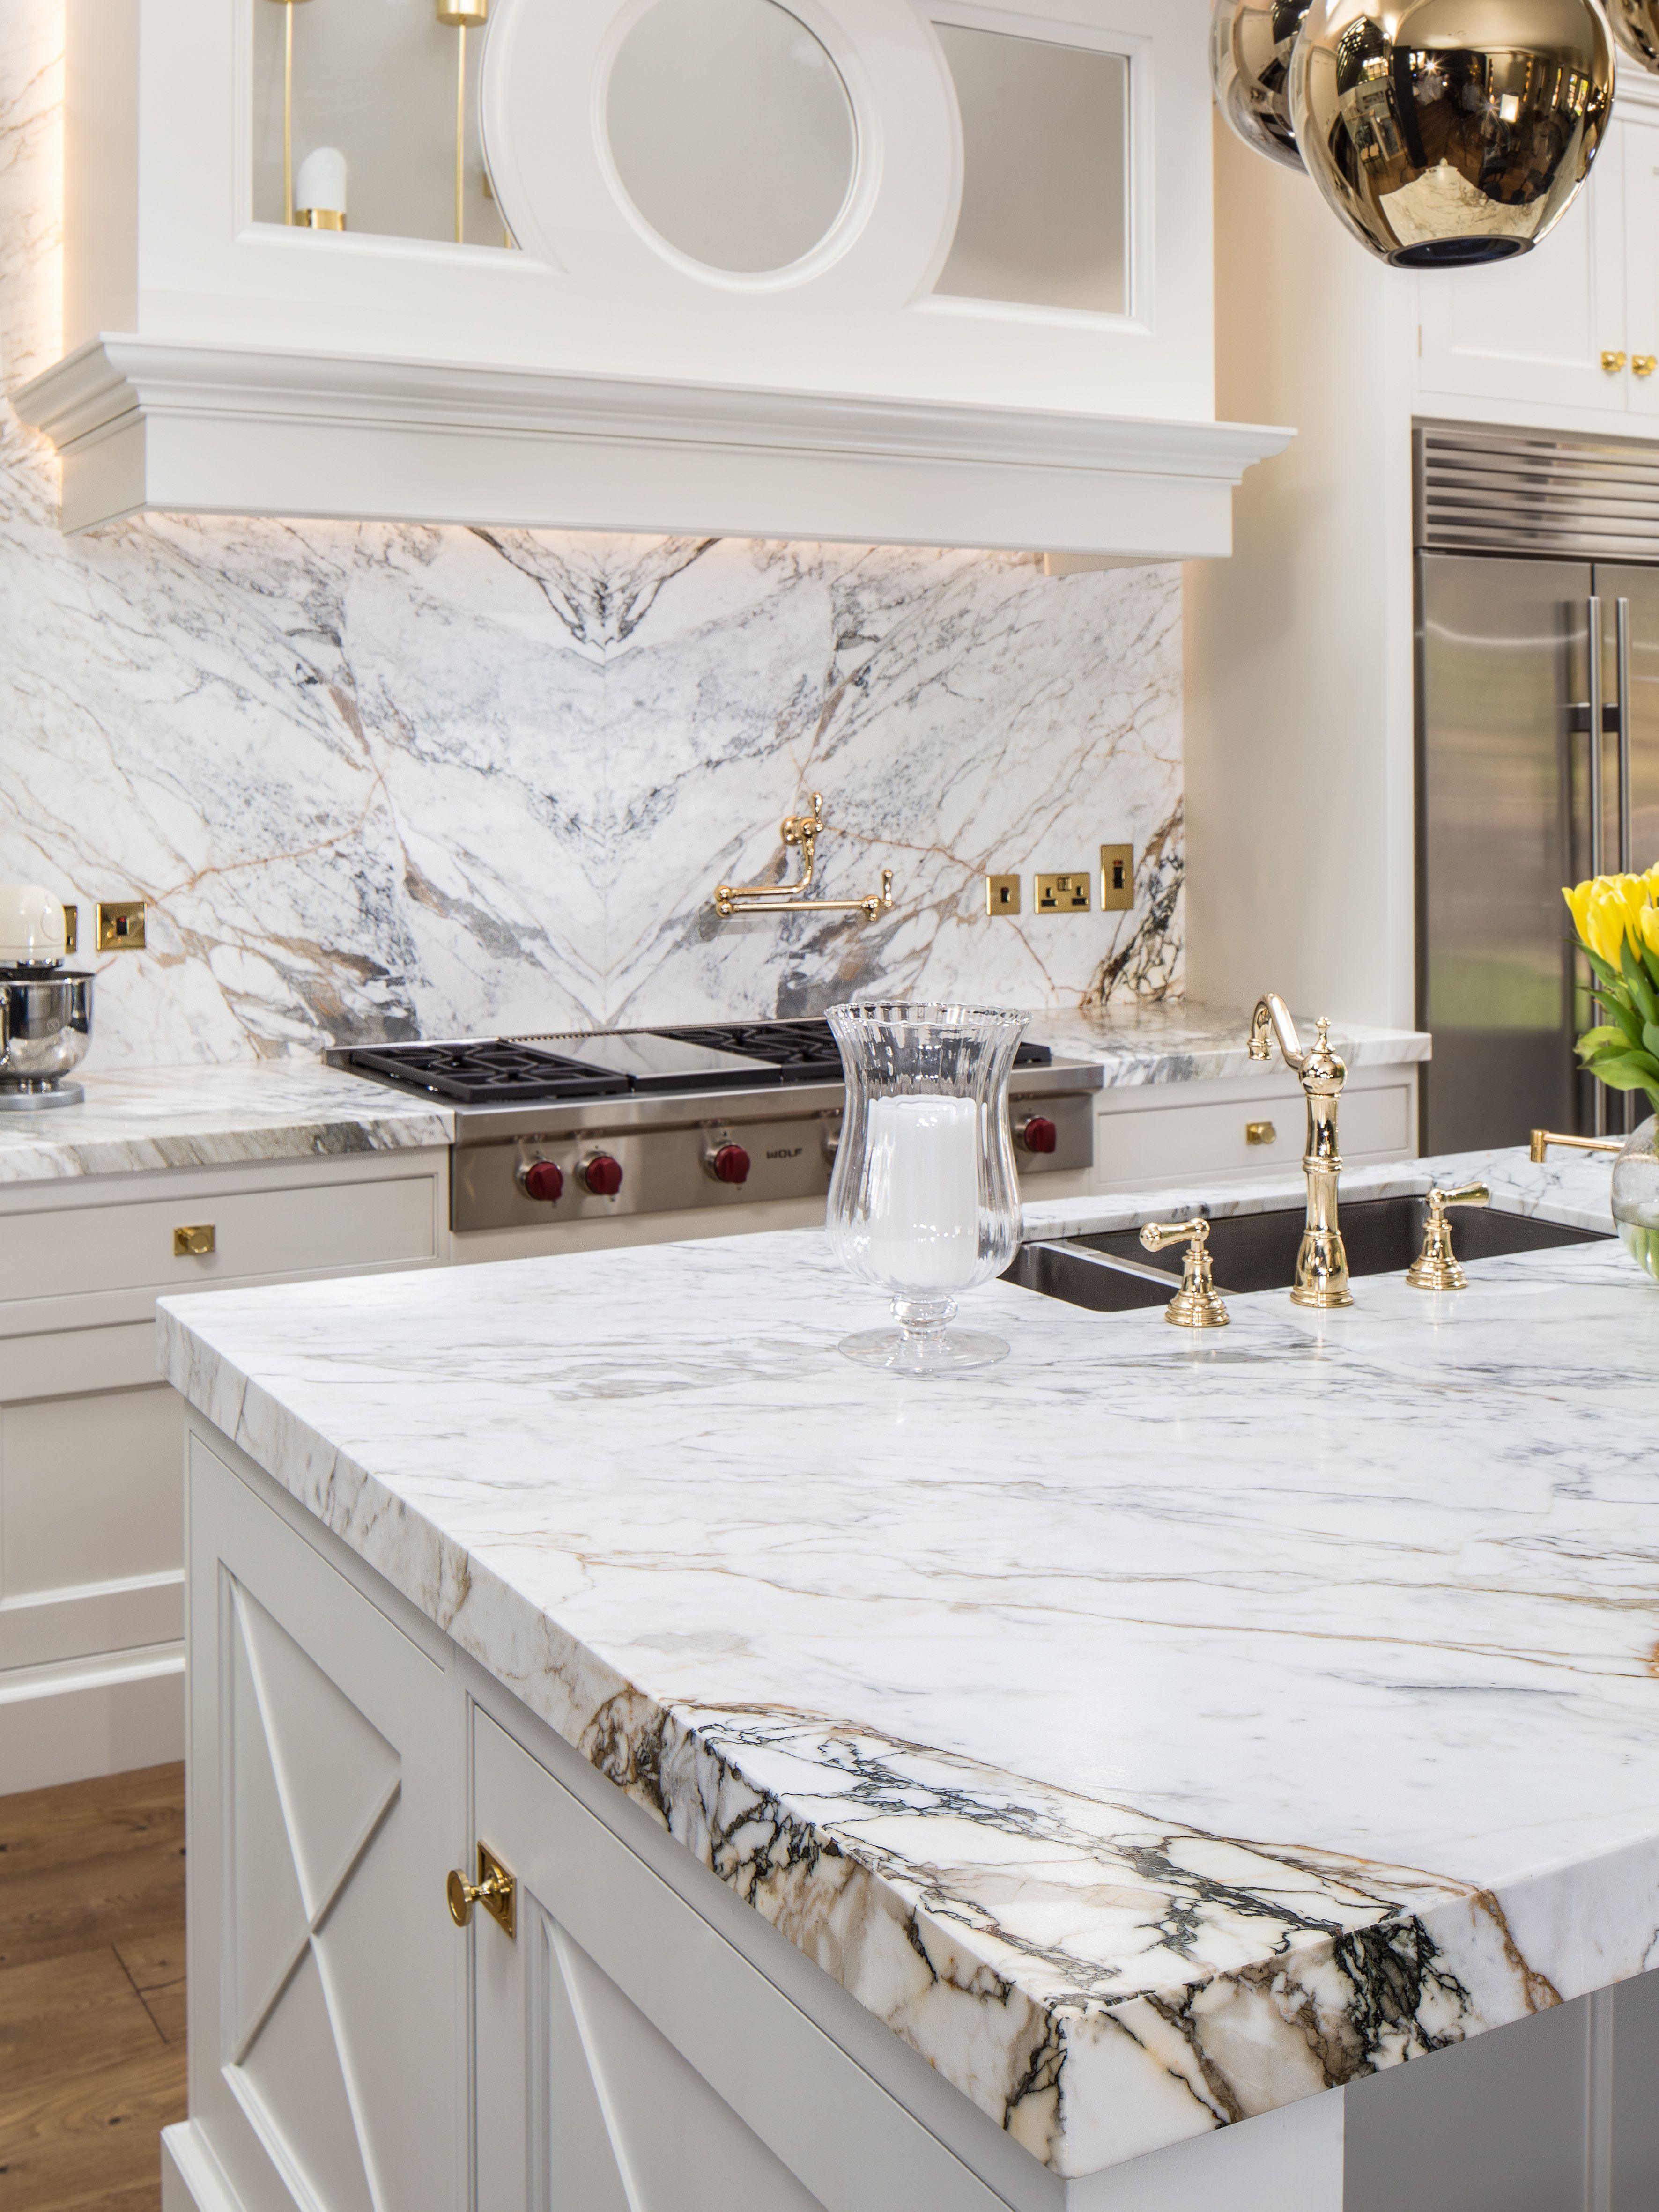 Marble Kitchen Accessories How To Decorate Counter Space Calacatta Paonazzo Kitchens Pantry Home Decor